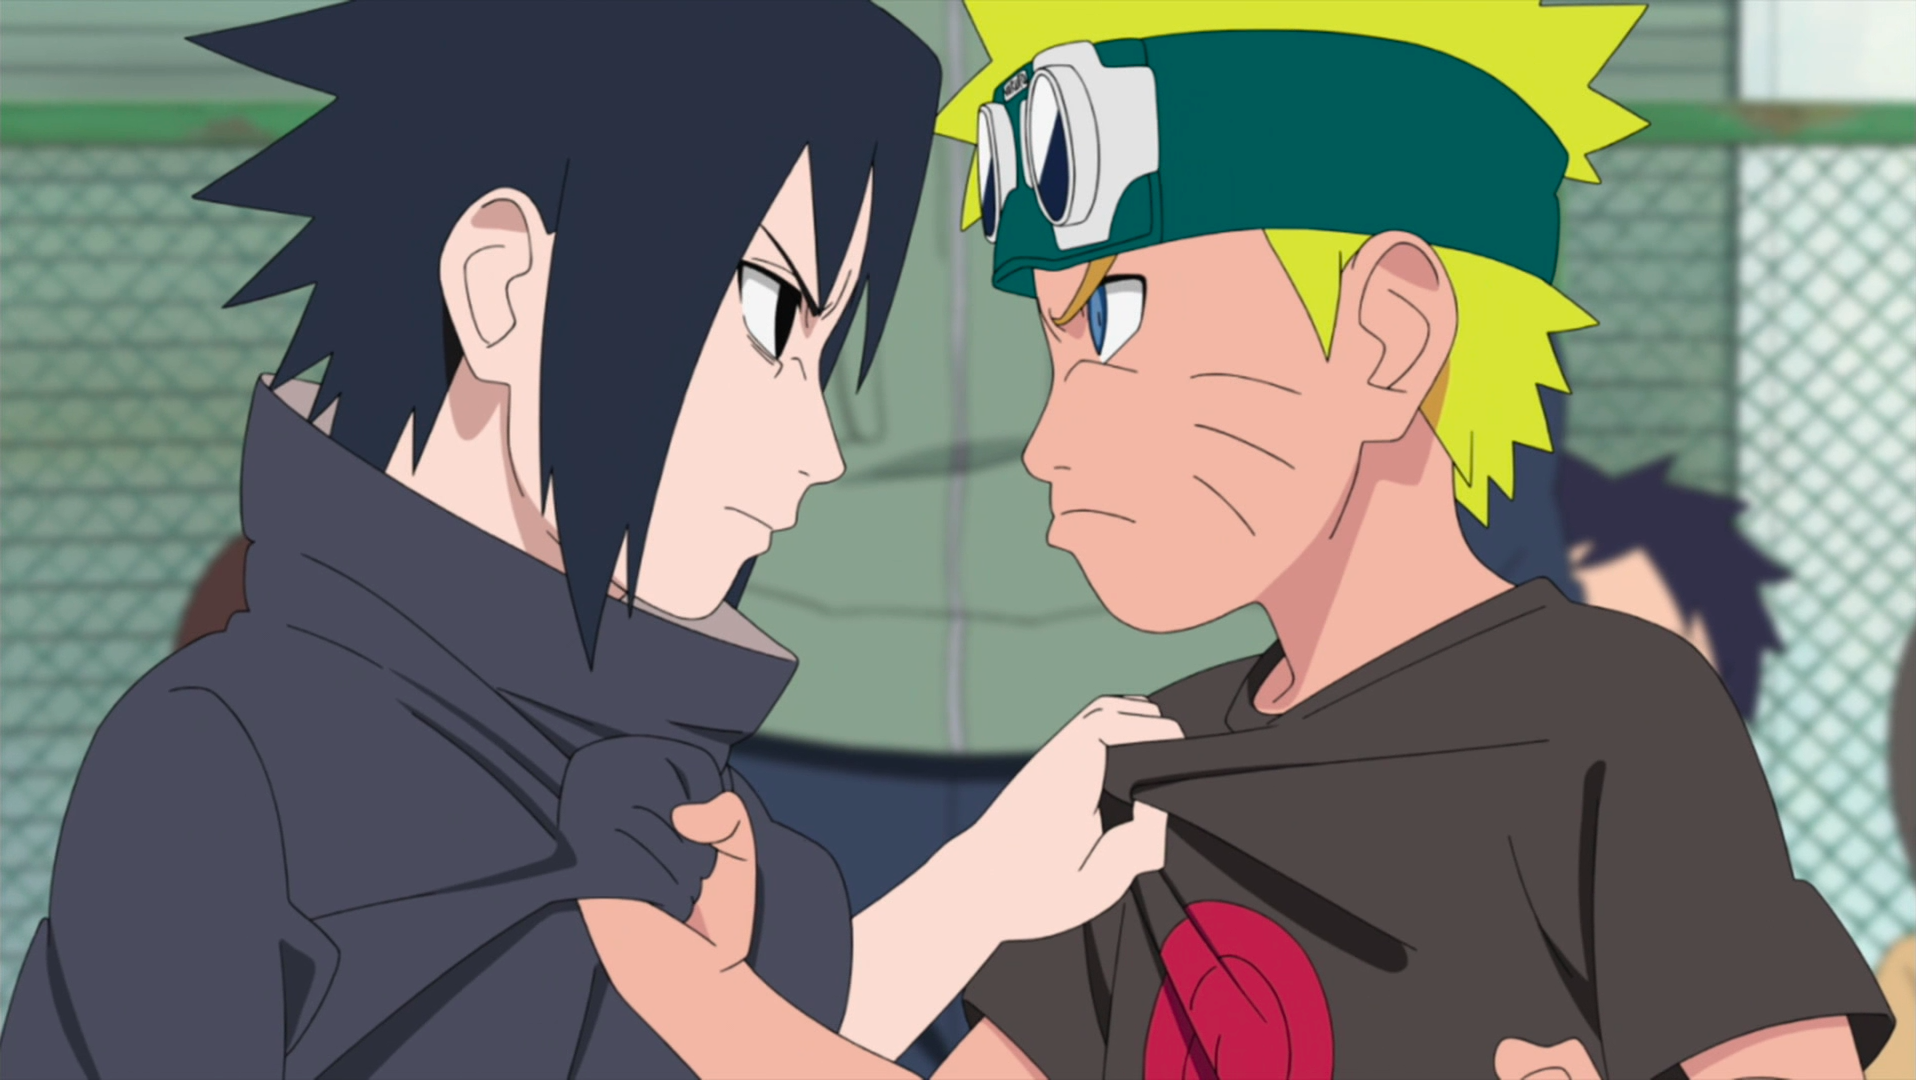 http://images4.wikia.nocookie.net/__cb20120830130606/naruto/images/c/c2/Young_sasuke_and_Naruto.png